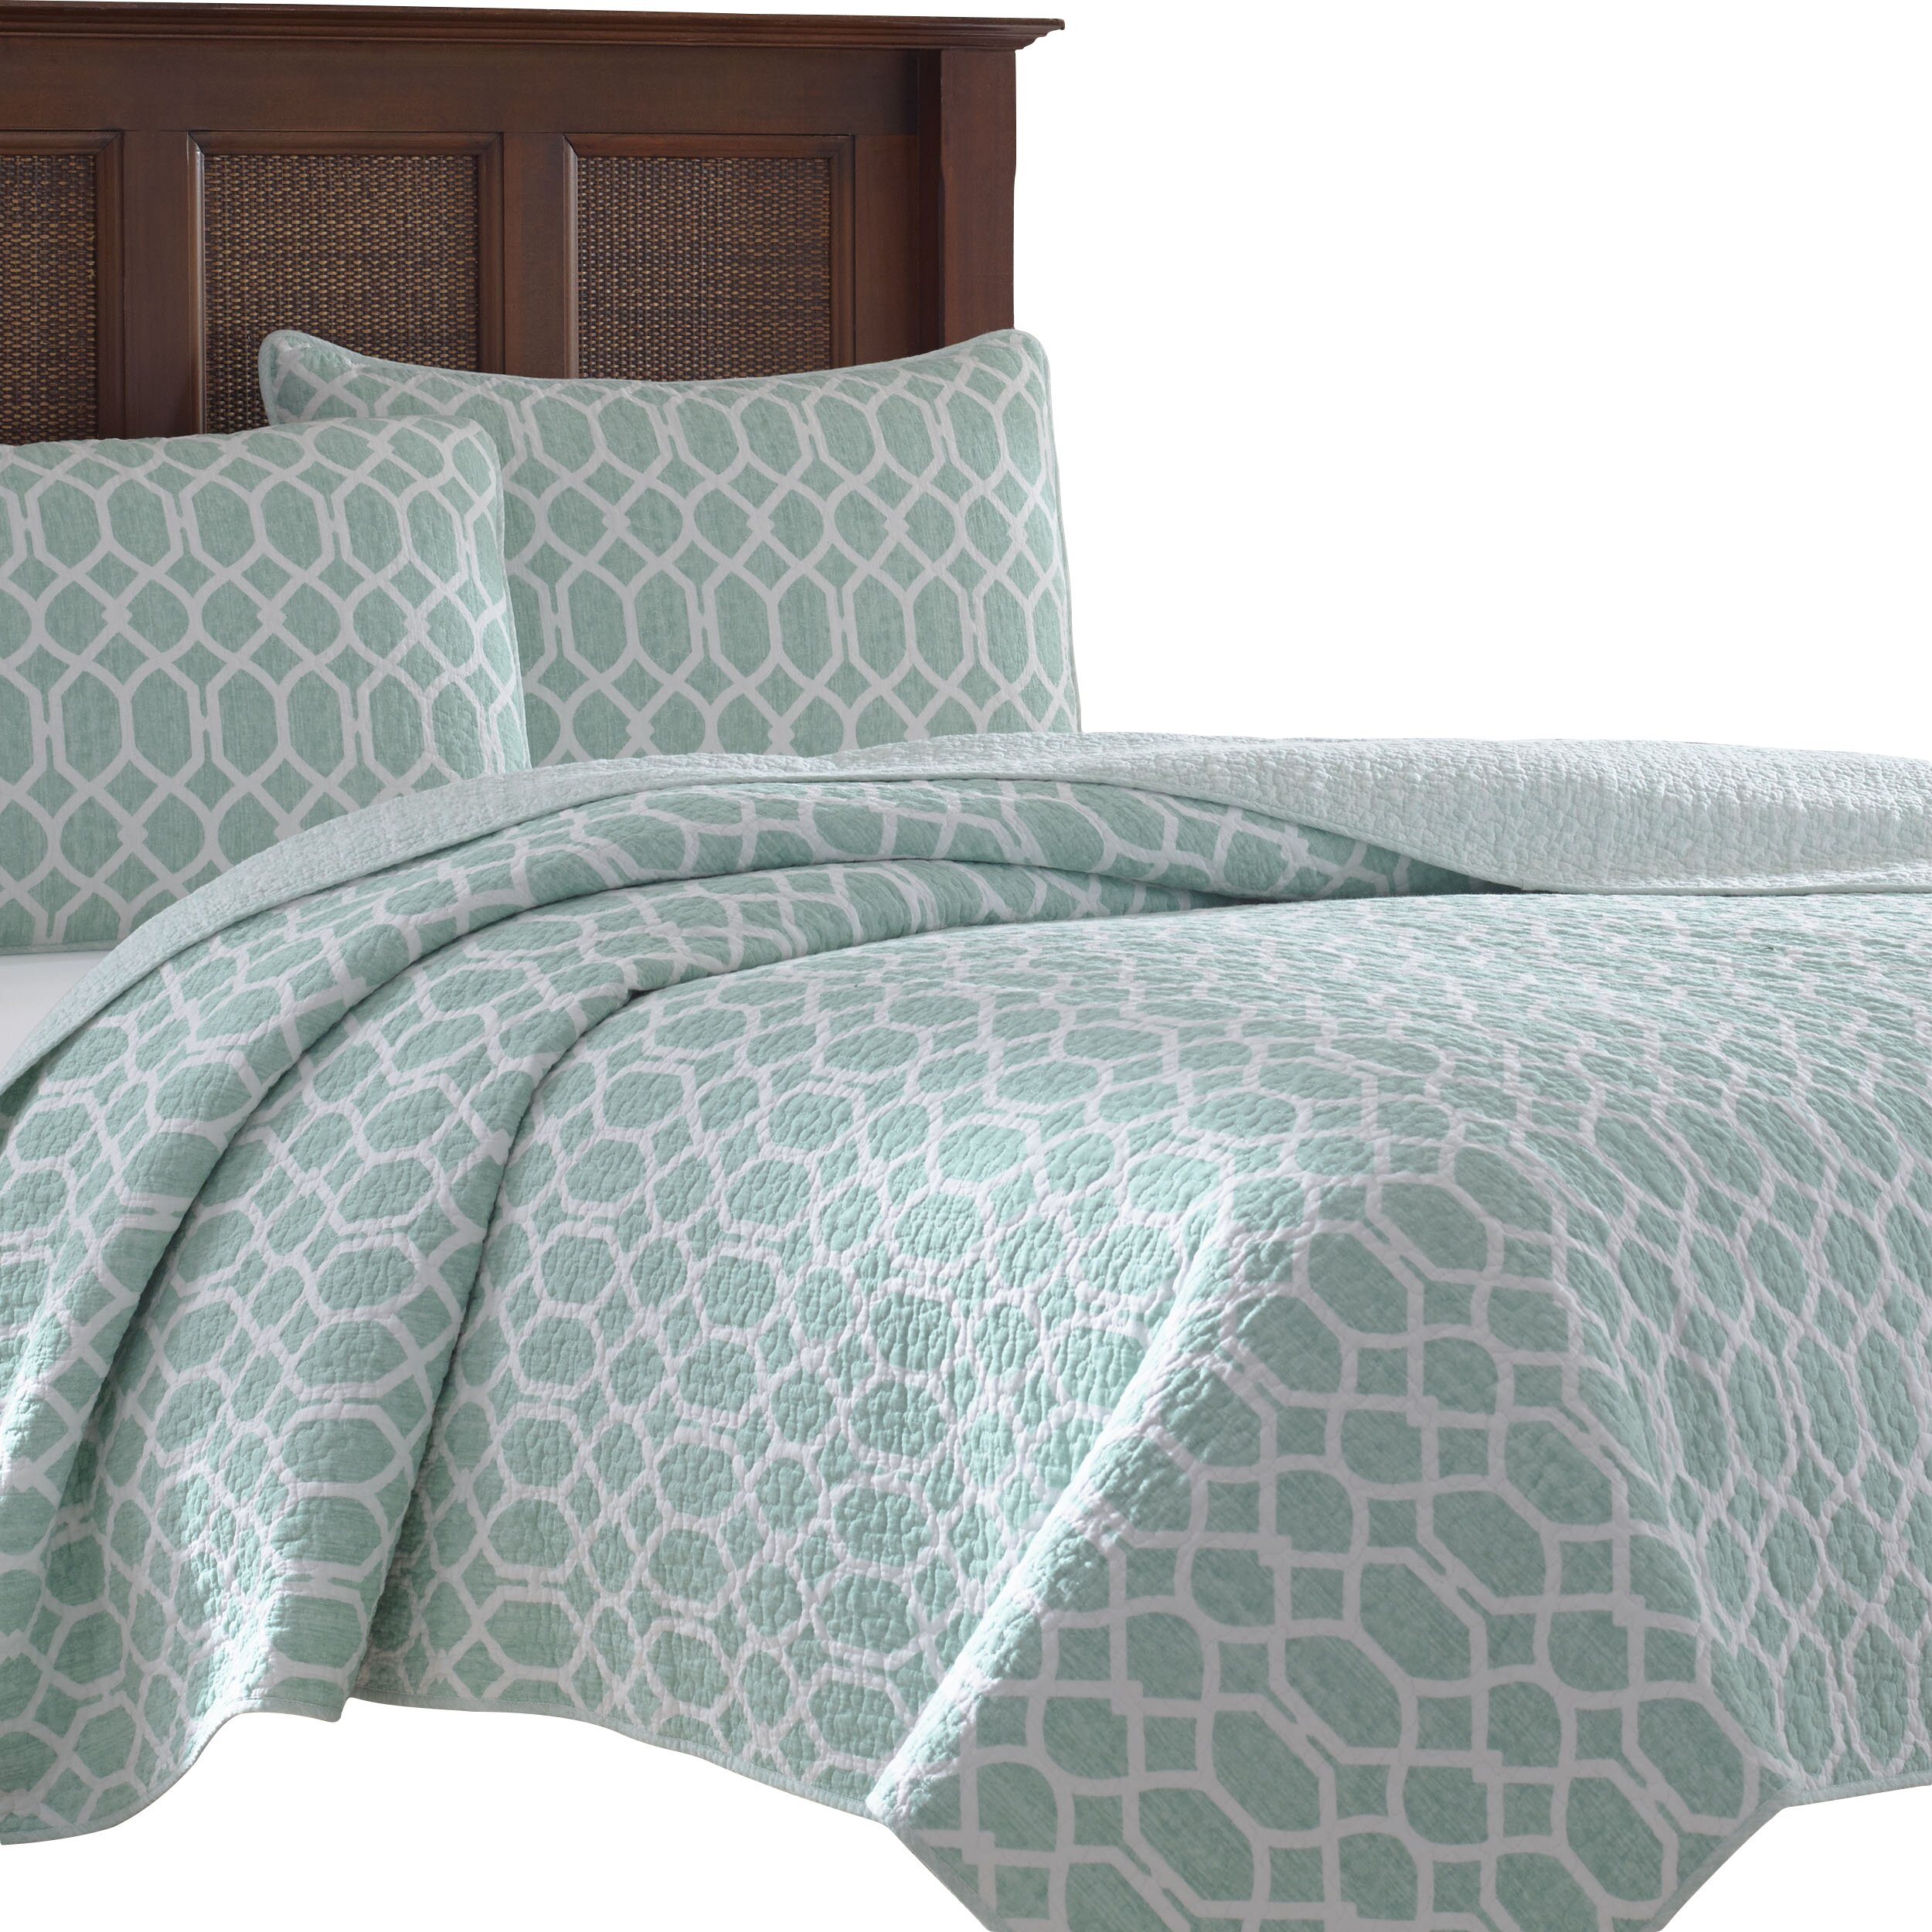 Tommy Bahama Bedding Catalina Trellis 3 Piece Reversible